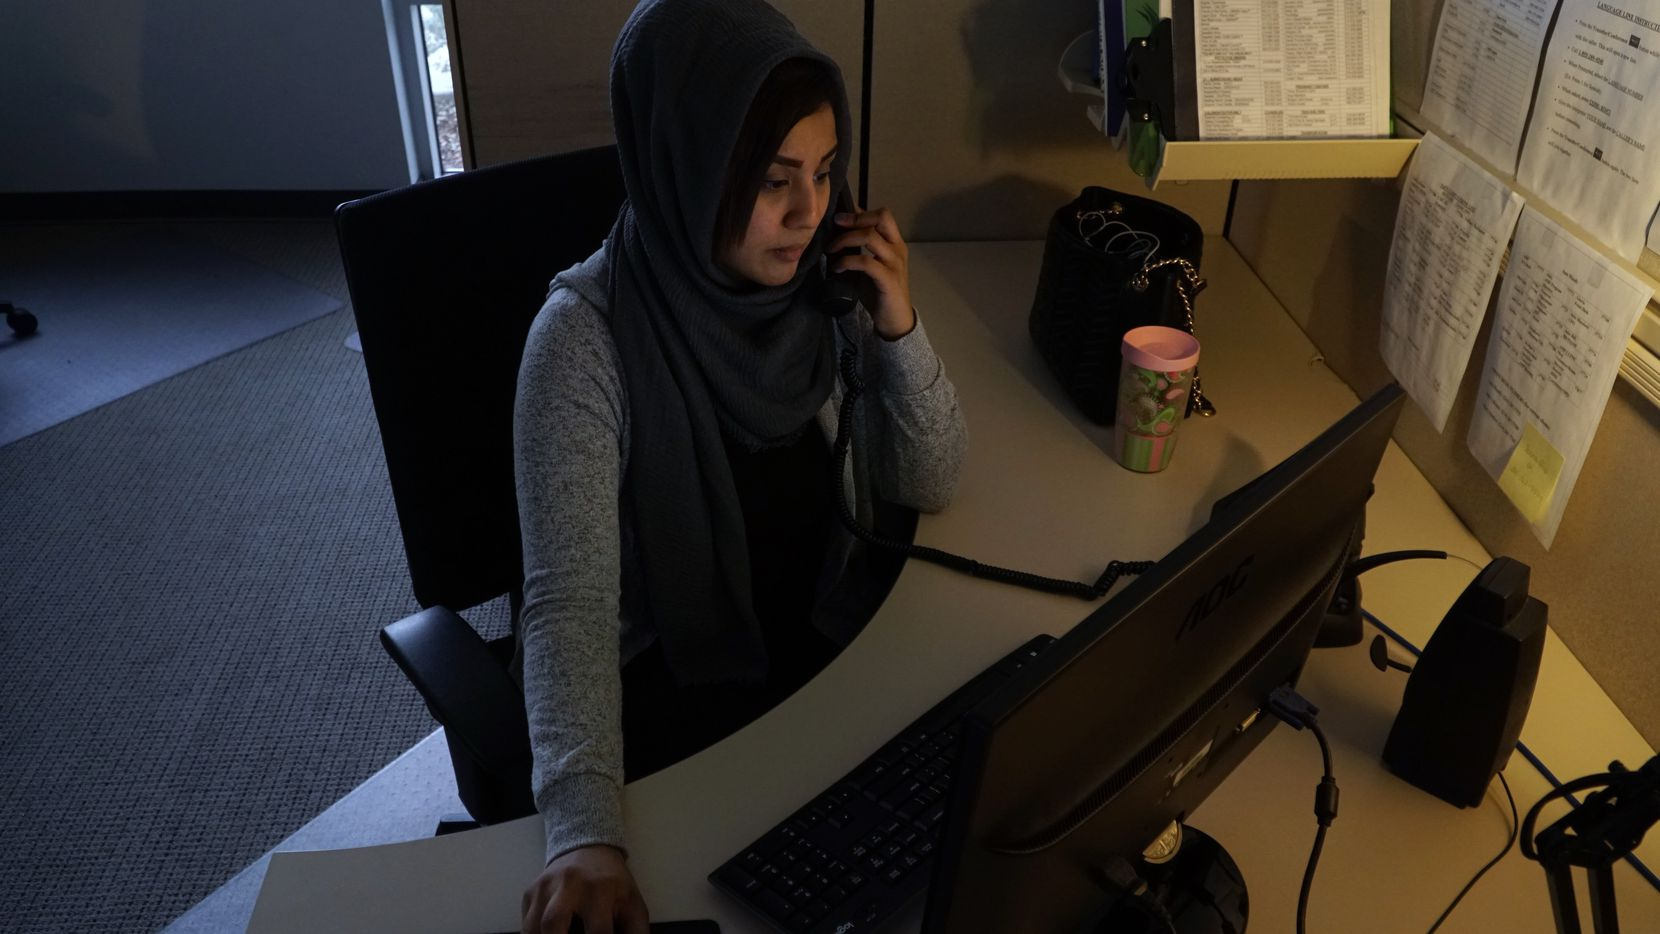 Hotline Crises Counselor Tahira Ali Abidi takes calls at Family Place in Dallas, Texas on Tuesday, November 26, 2019. Uber just awarded the organization a $32K ride share and $8K cash grant.